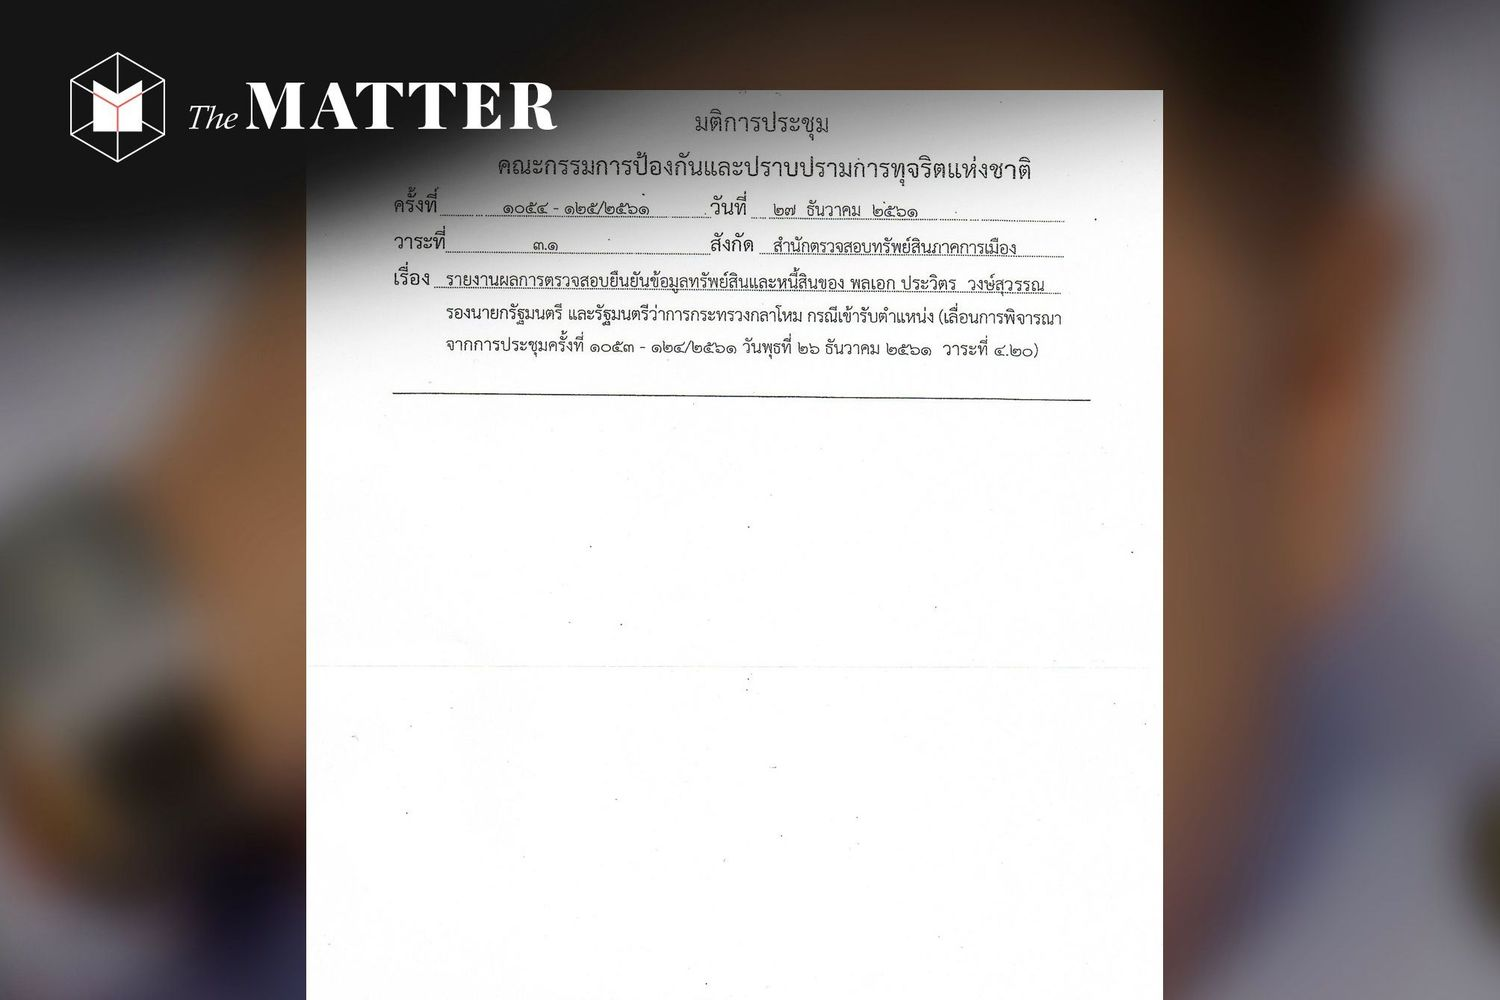 One of the blank documents the NACC sent to The Matter after it asked it for details of Gen Prawit Wongsuwon's asset disclosure case. (Photo from Facebook/The Matter)